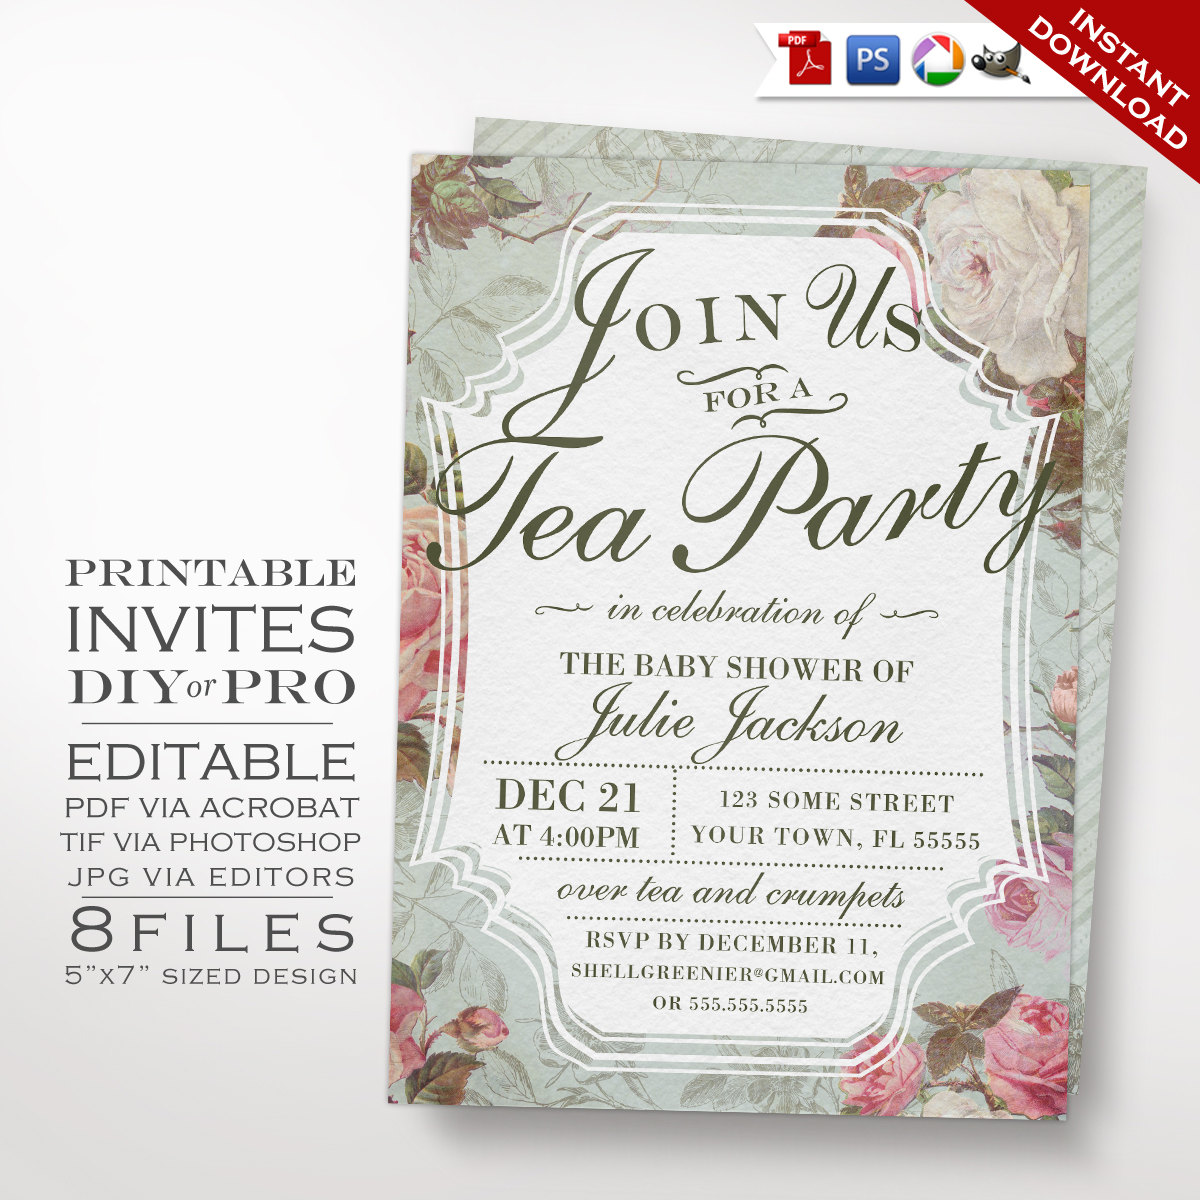 Vintage rose baby shower invitation template diy country baby shower invitation template diy country baby gender reveal tea invitation previous next solutioingenieria Gallery